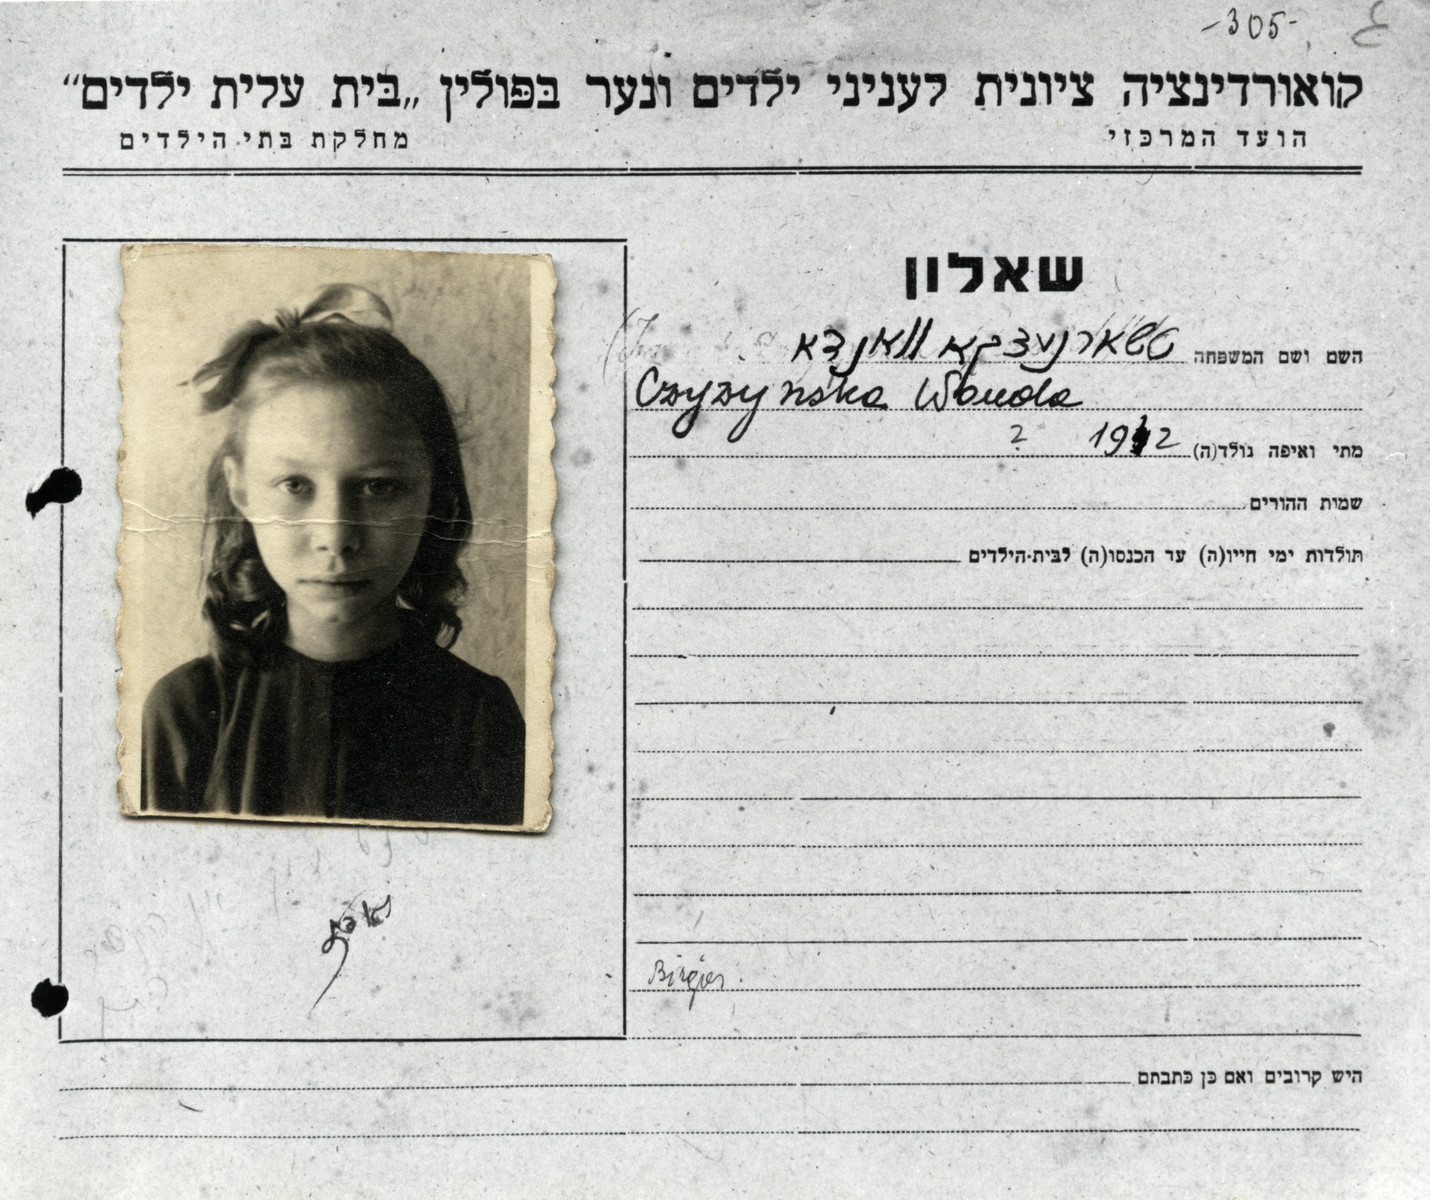 Identification card issued by the Coordinatsia Committee issued to Wanda (Tammy) with the mistaken year of birth of 1942.